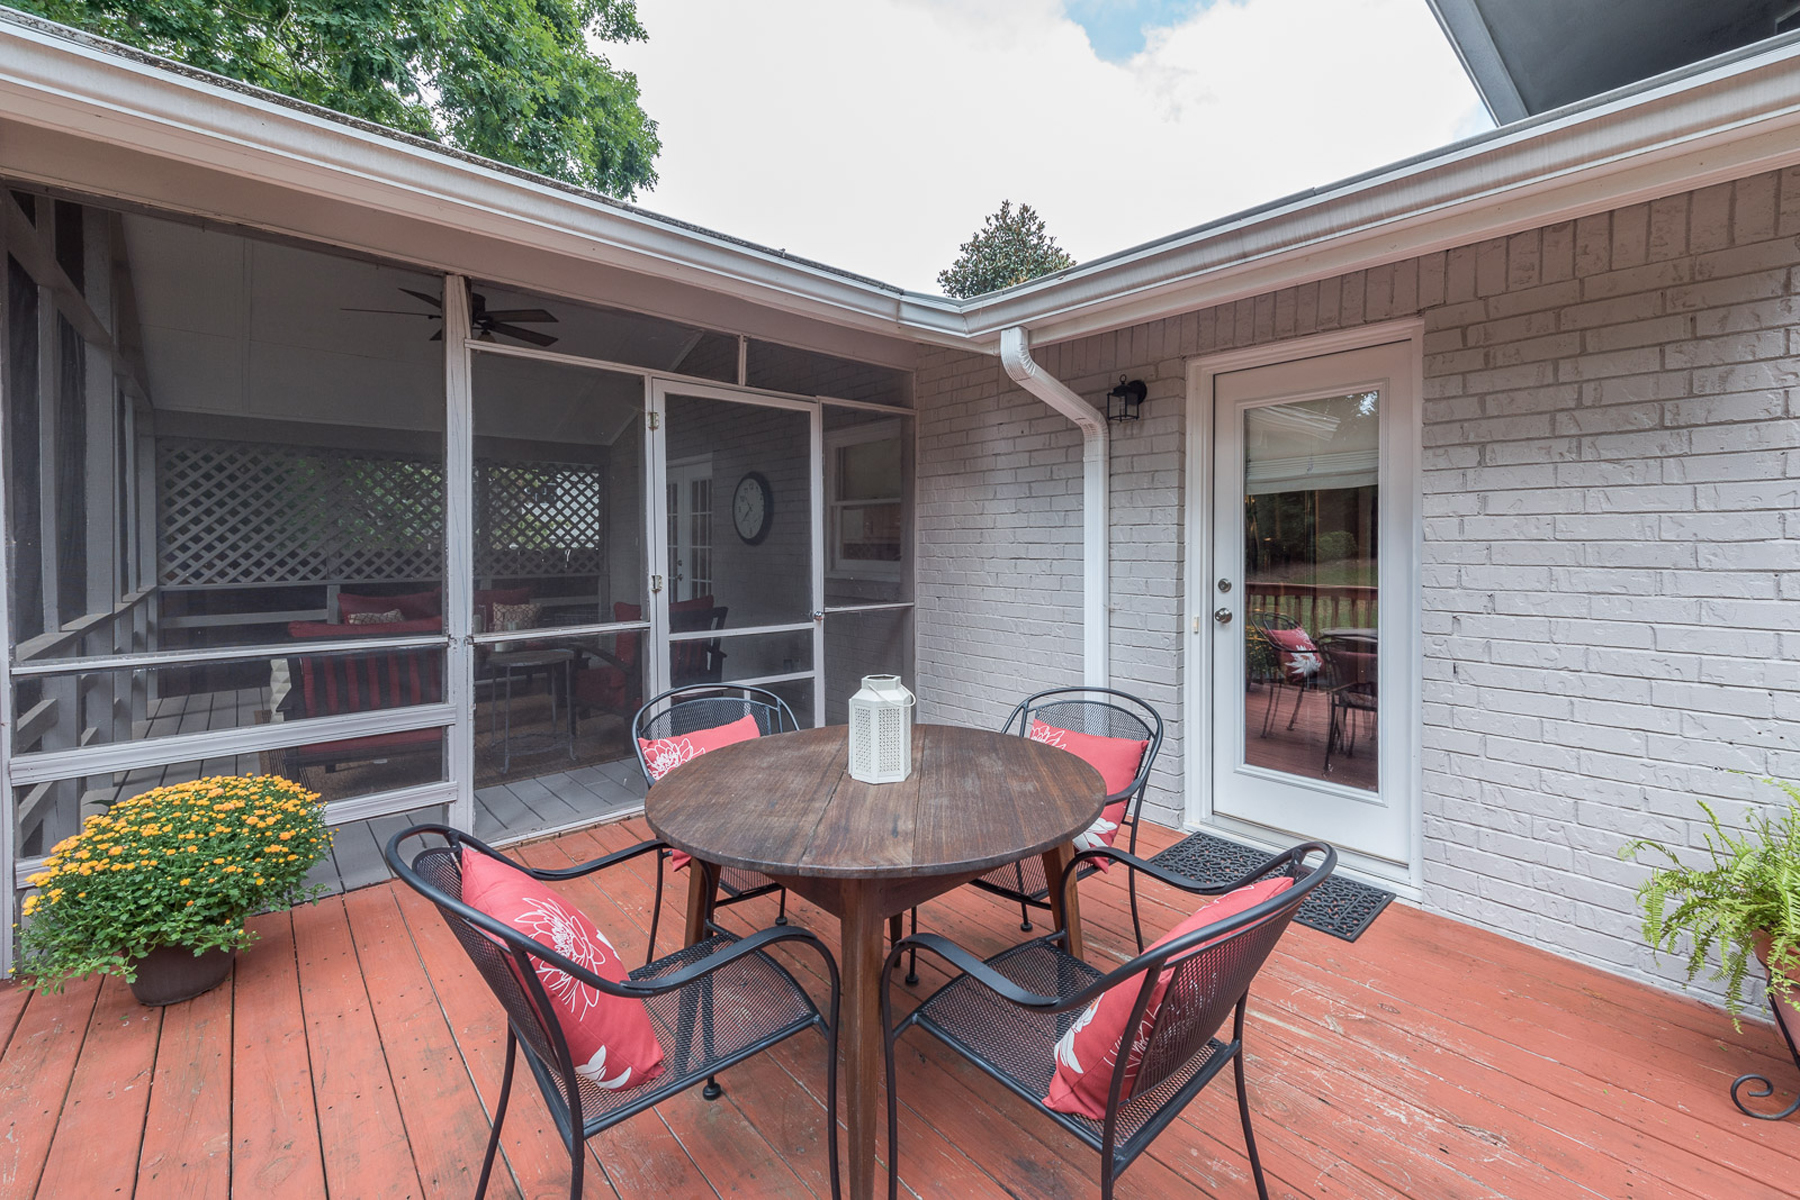 Additional photo for property listing at Amazing Home Extensively Renovated On Large, Fenced Lot 2501 Maclaren Circle Dunwoody, Γεωργια 30360 Ηνωμενεσ Πολιτειεσ